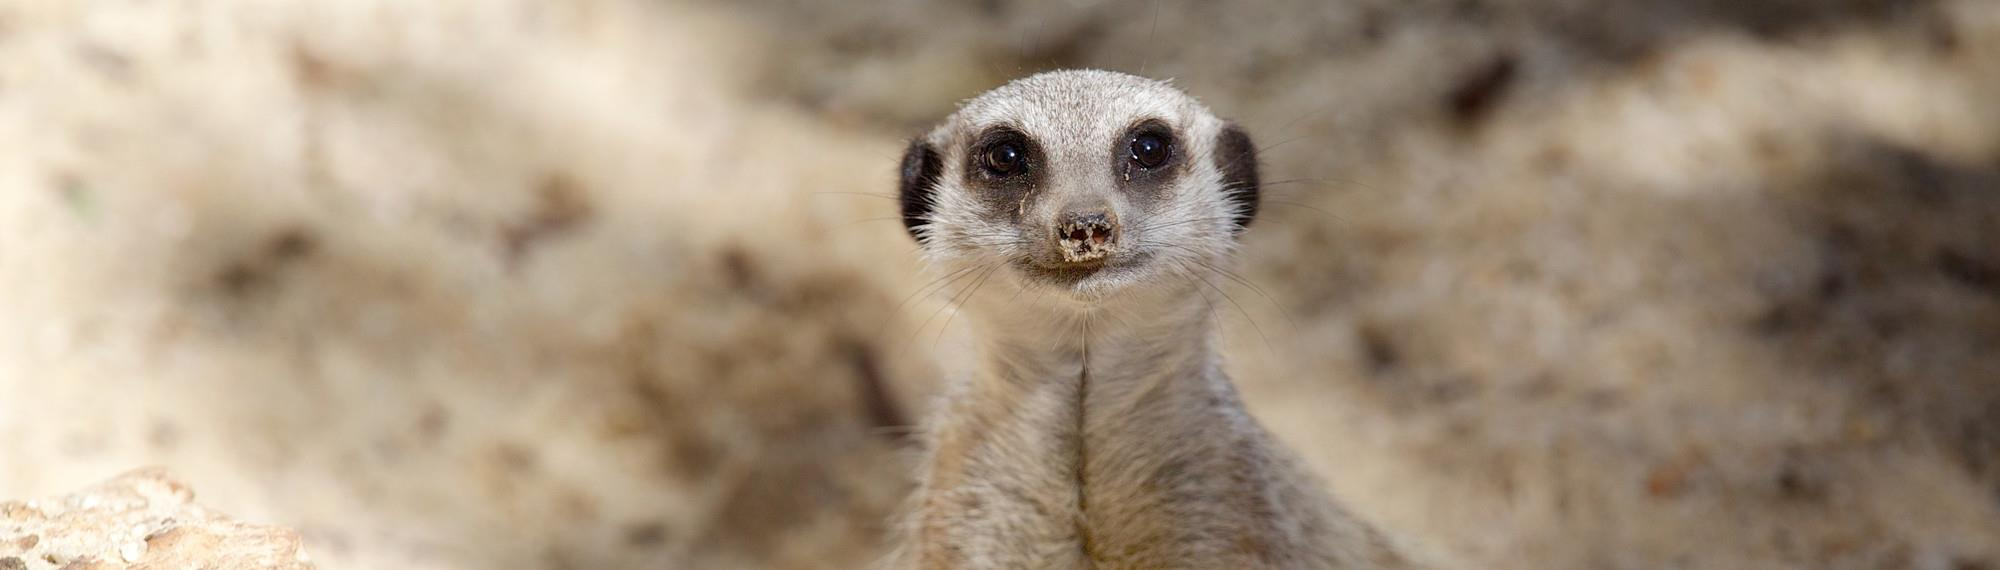 Meerkat looking at camera with sandy background